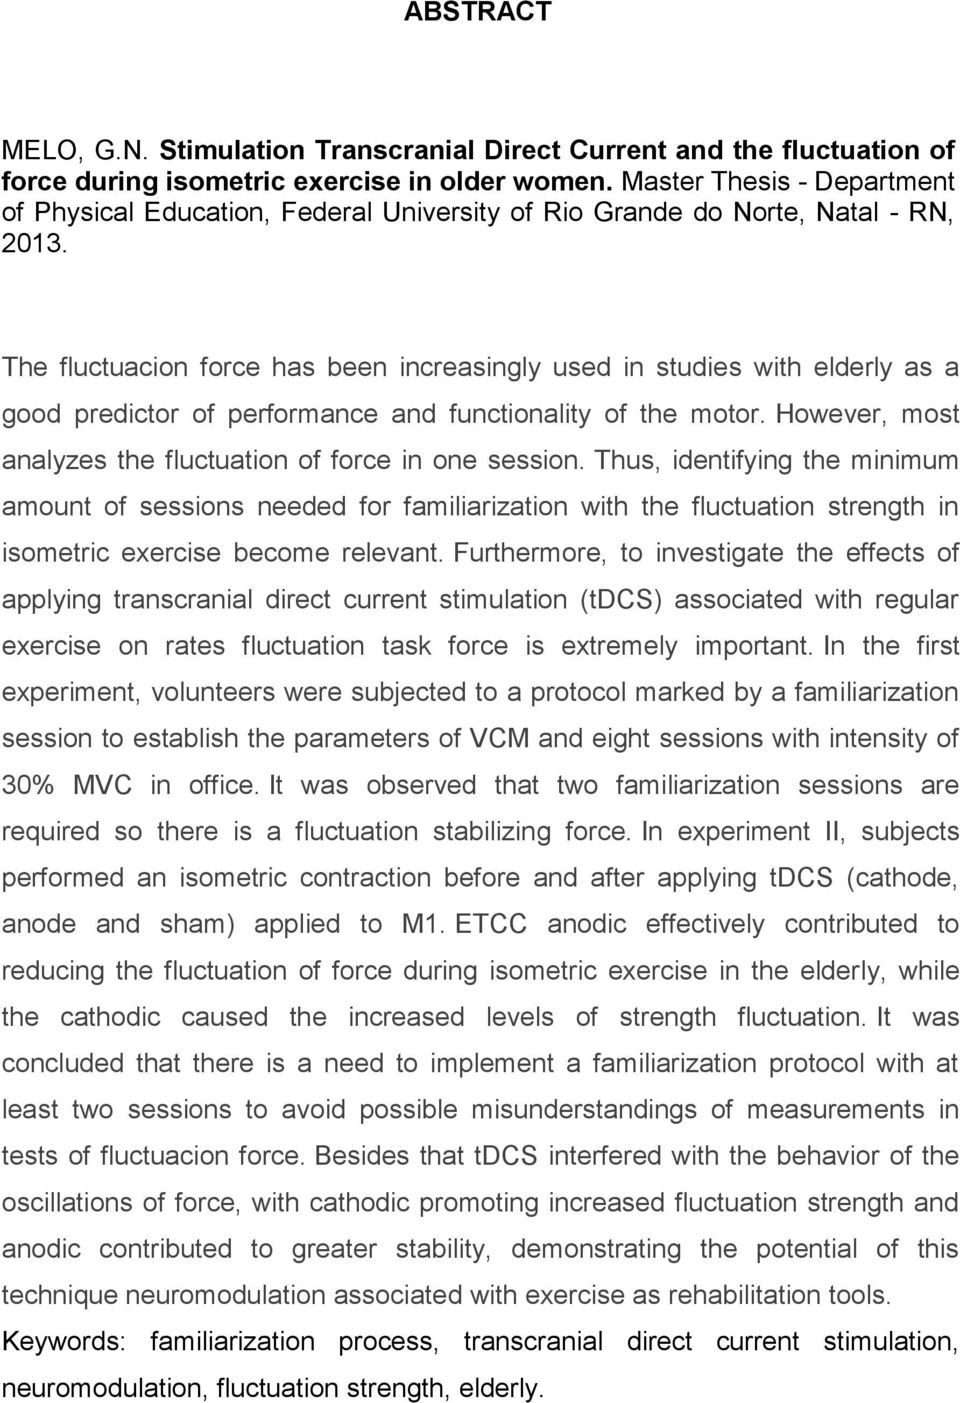 The fluctuacion force has been increasingly used in studies with elderly as a good predictor of performance and functionality of the motor.